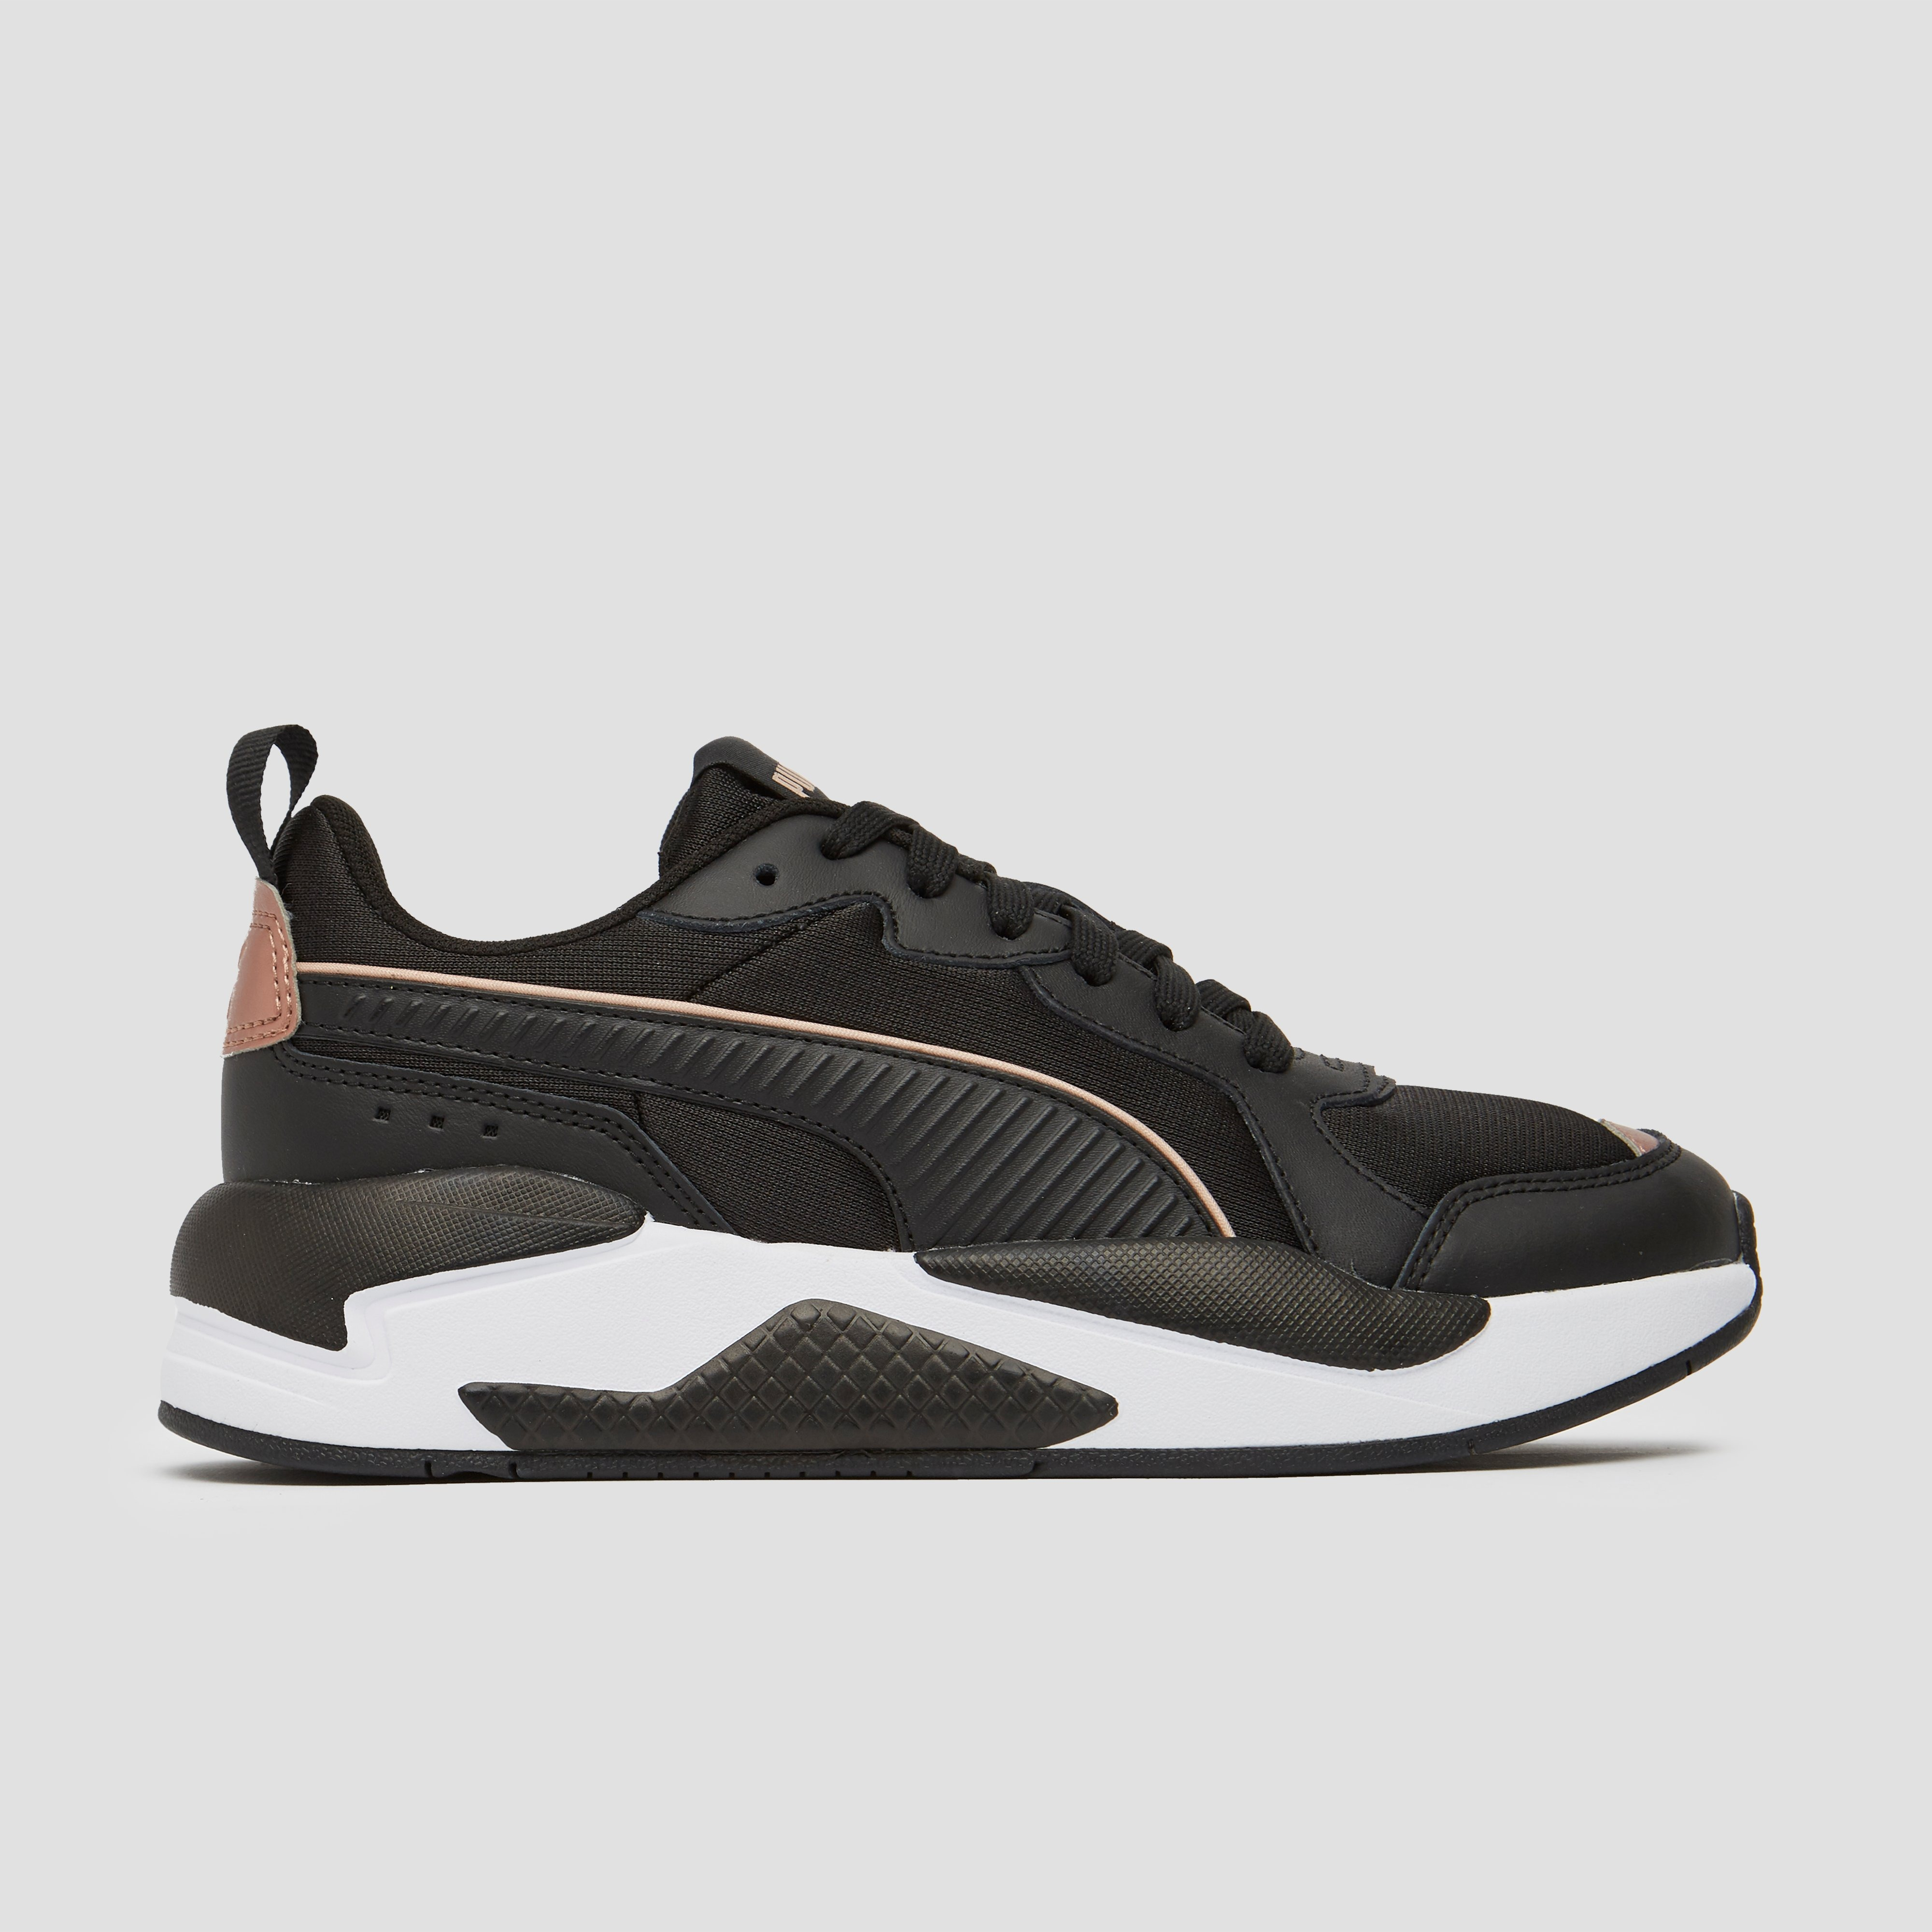 PUMA X-RAY METALLIC SNEAKERS ZWART/GOUD DAMES | Perrysport